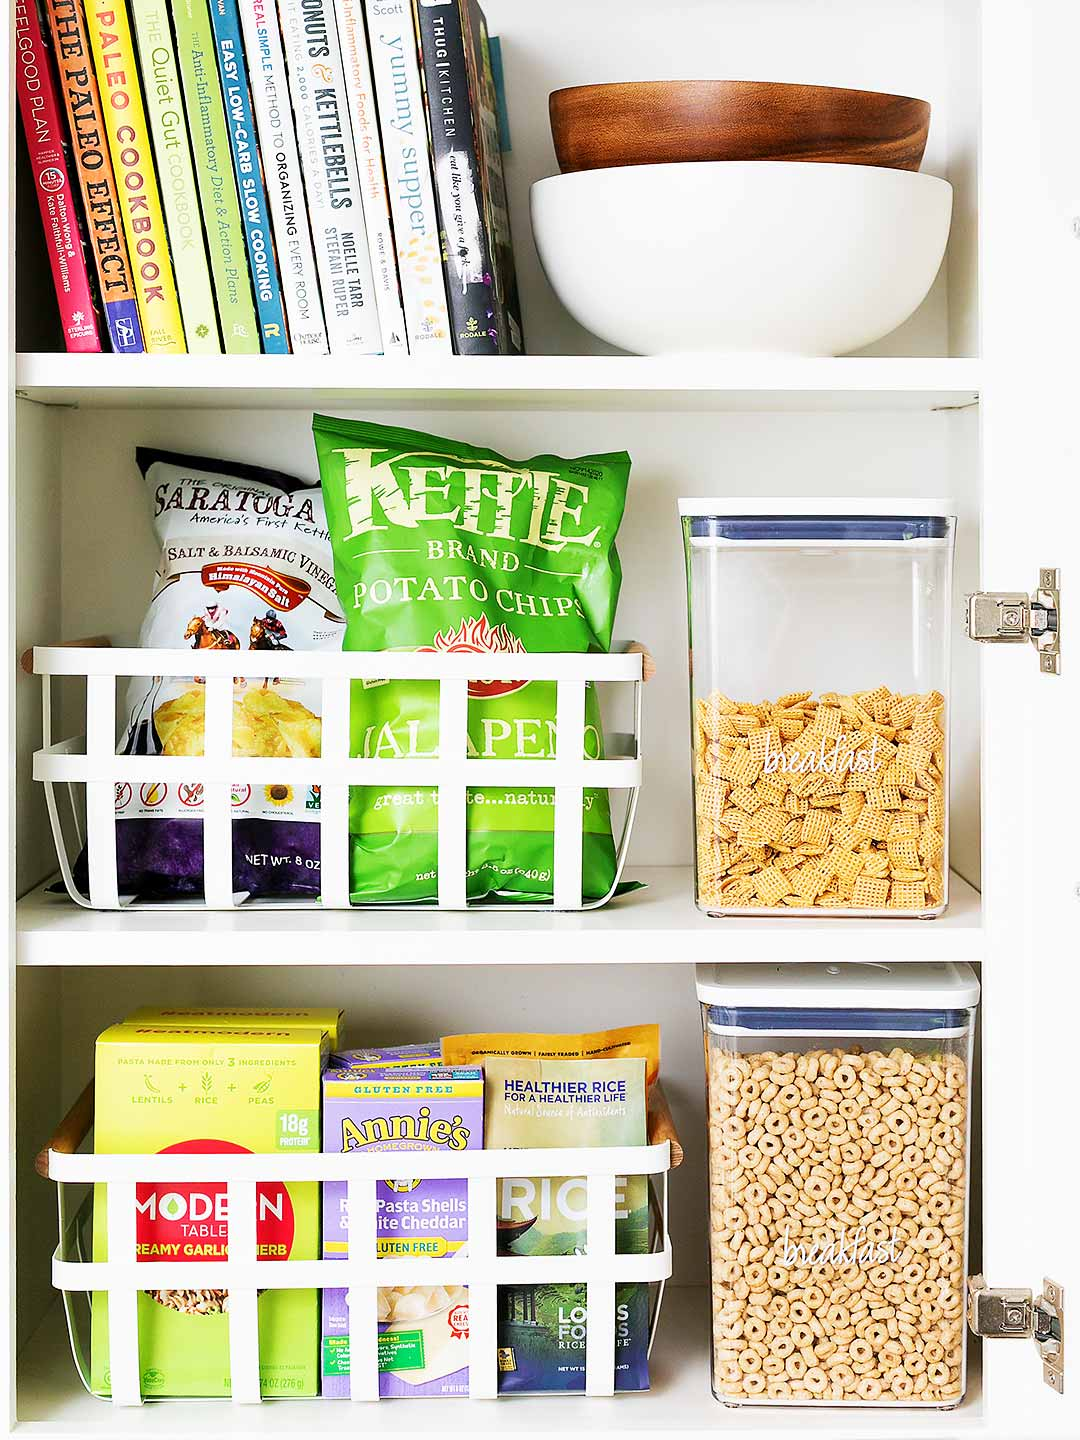 Cookbooks and cooking ingredients organized on kitchen shelves by type and color